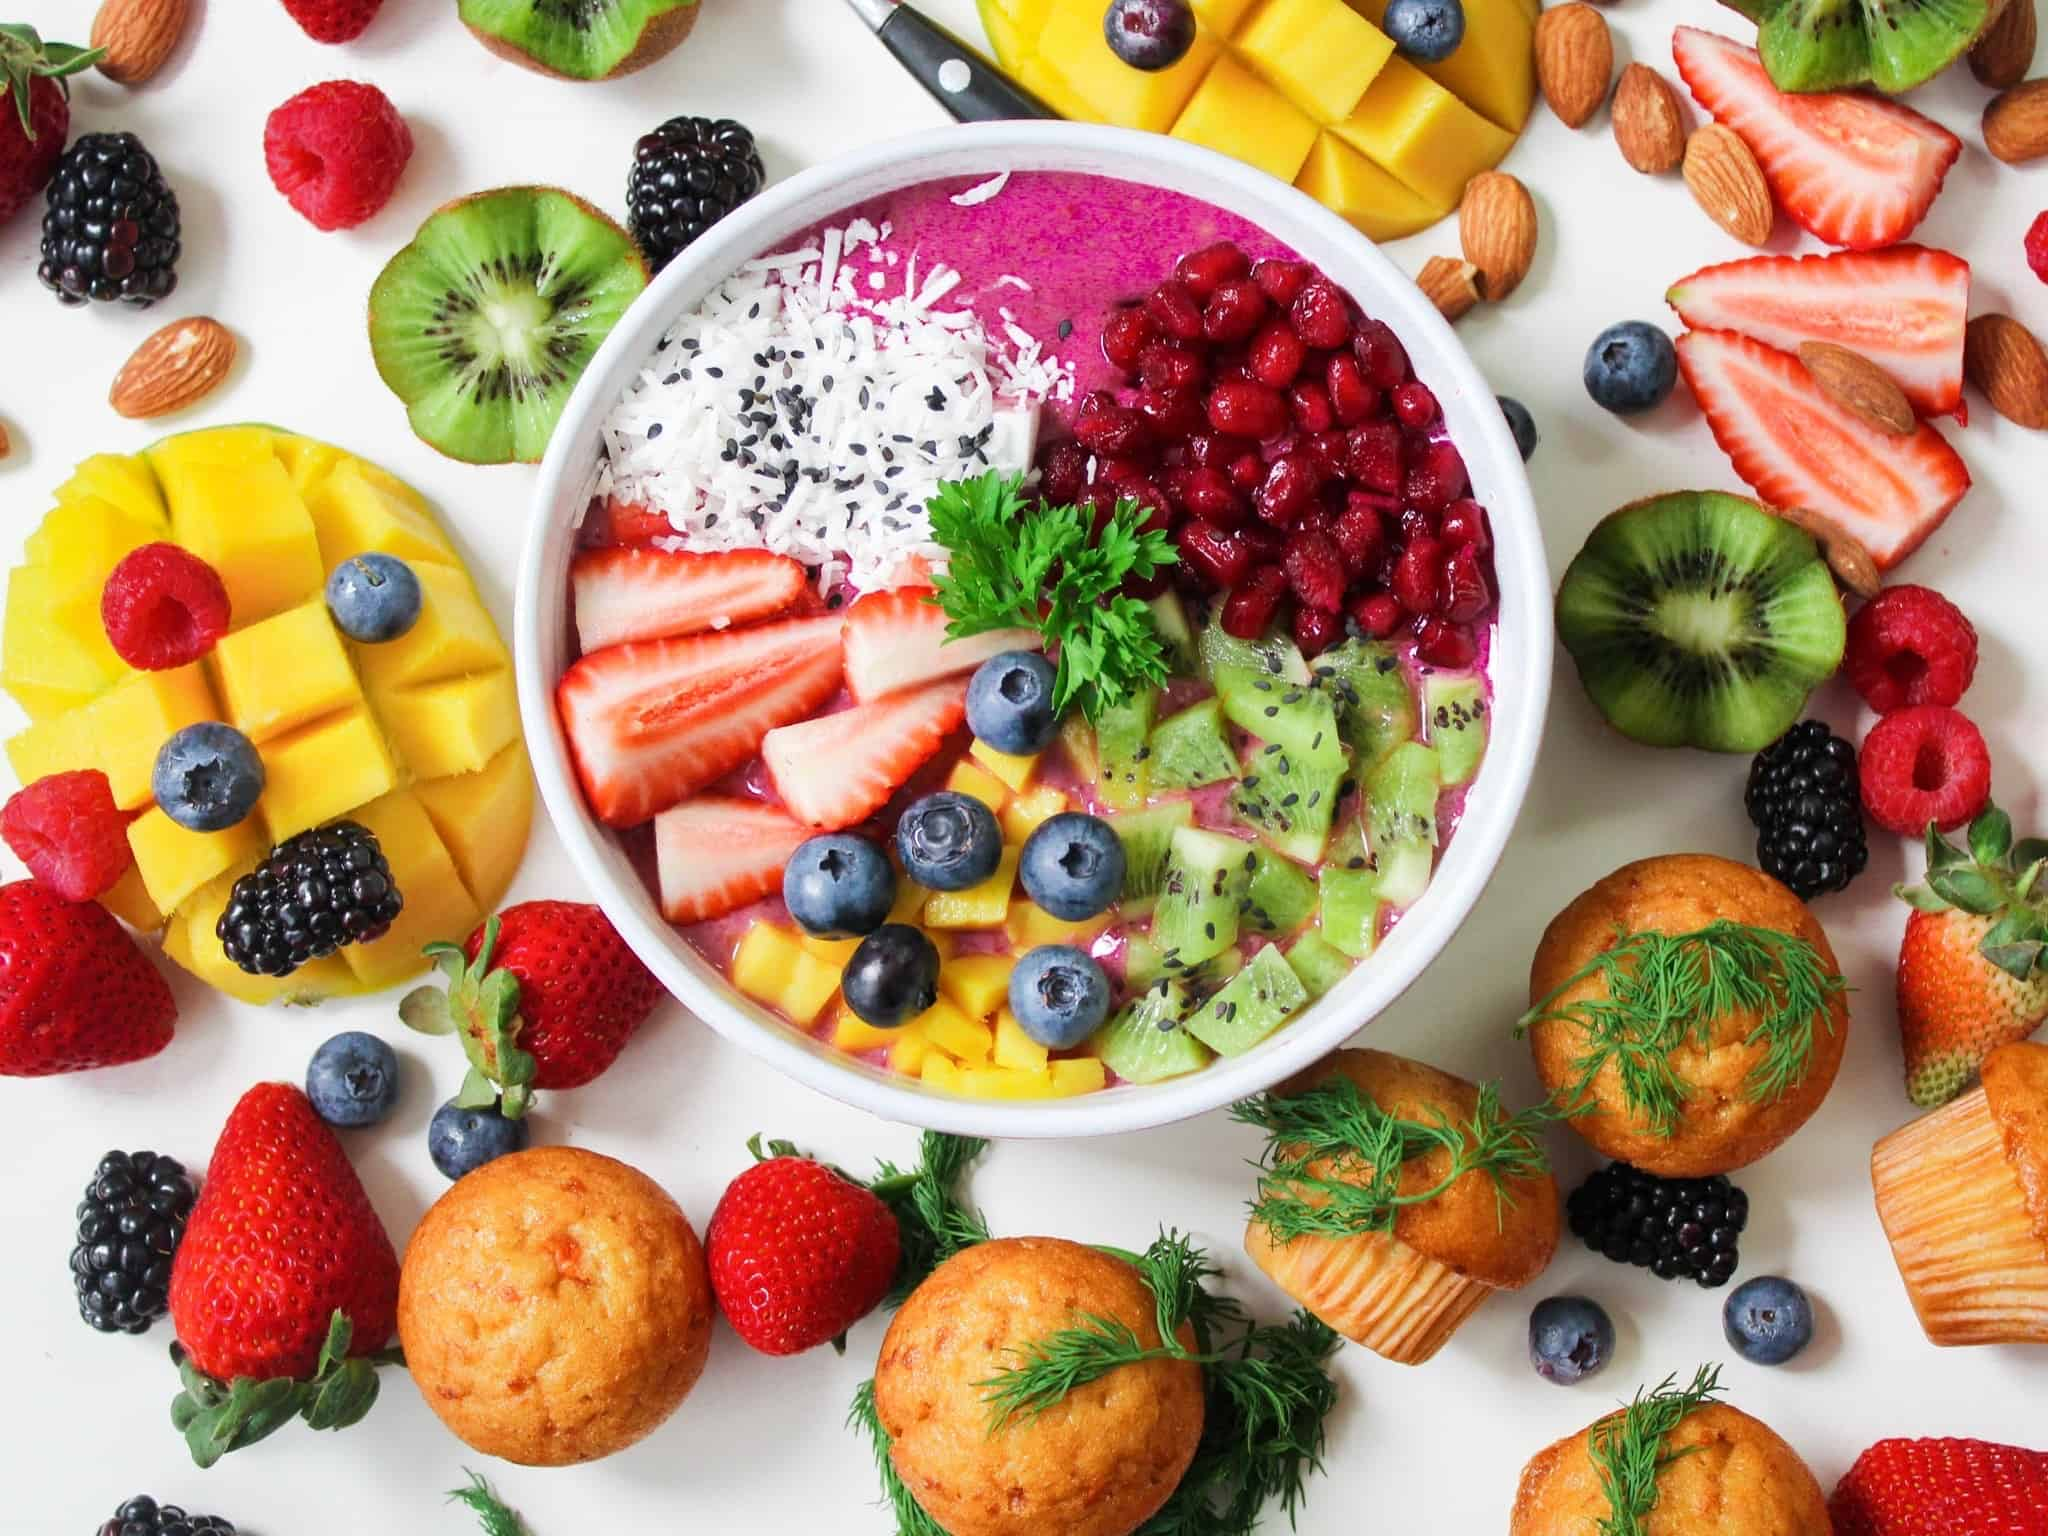 Healthy Snack Ideas - Weight-Loss Friendly Snacks